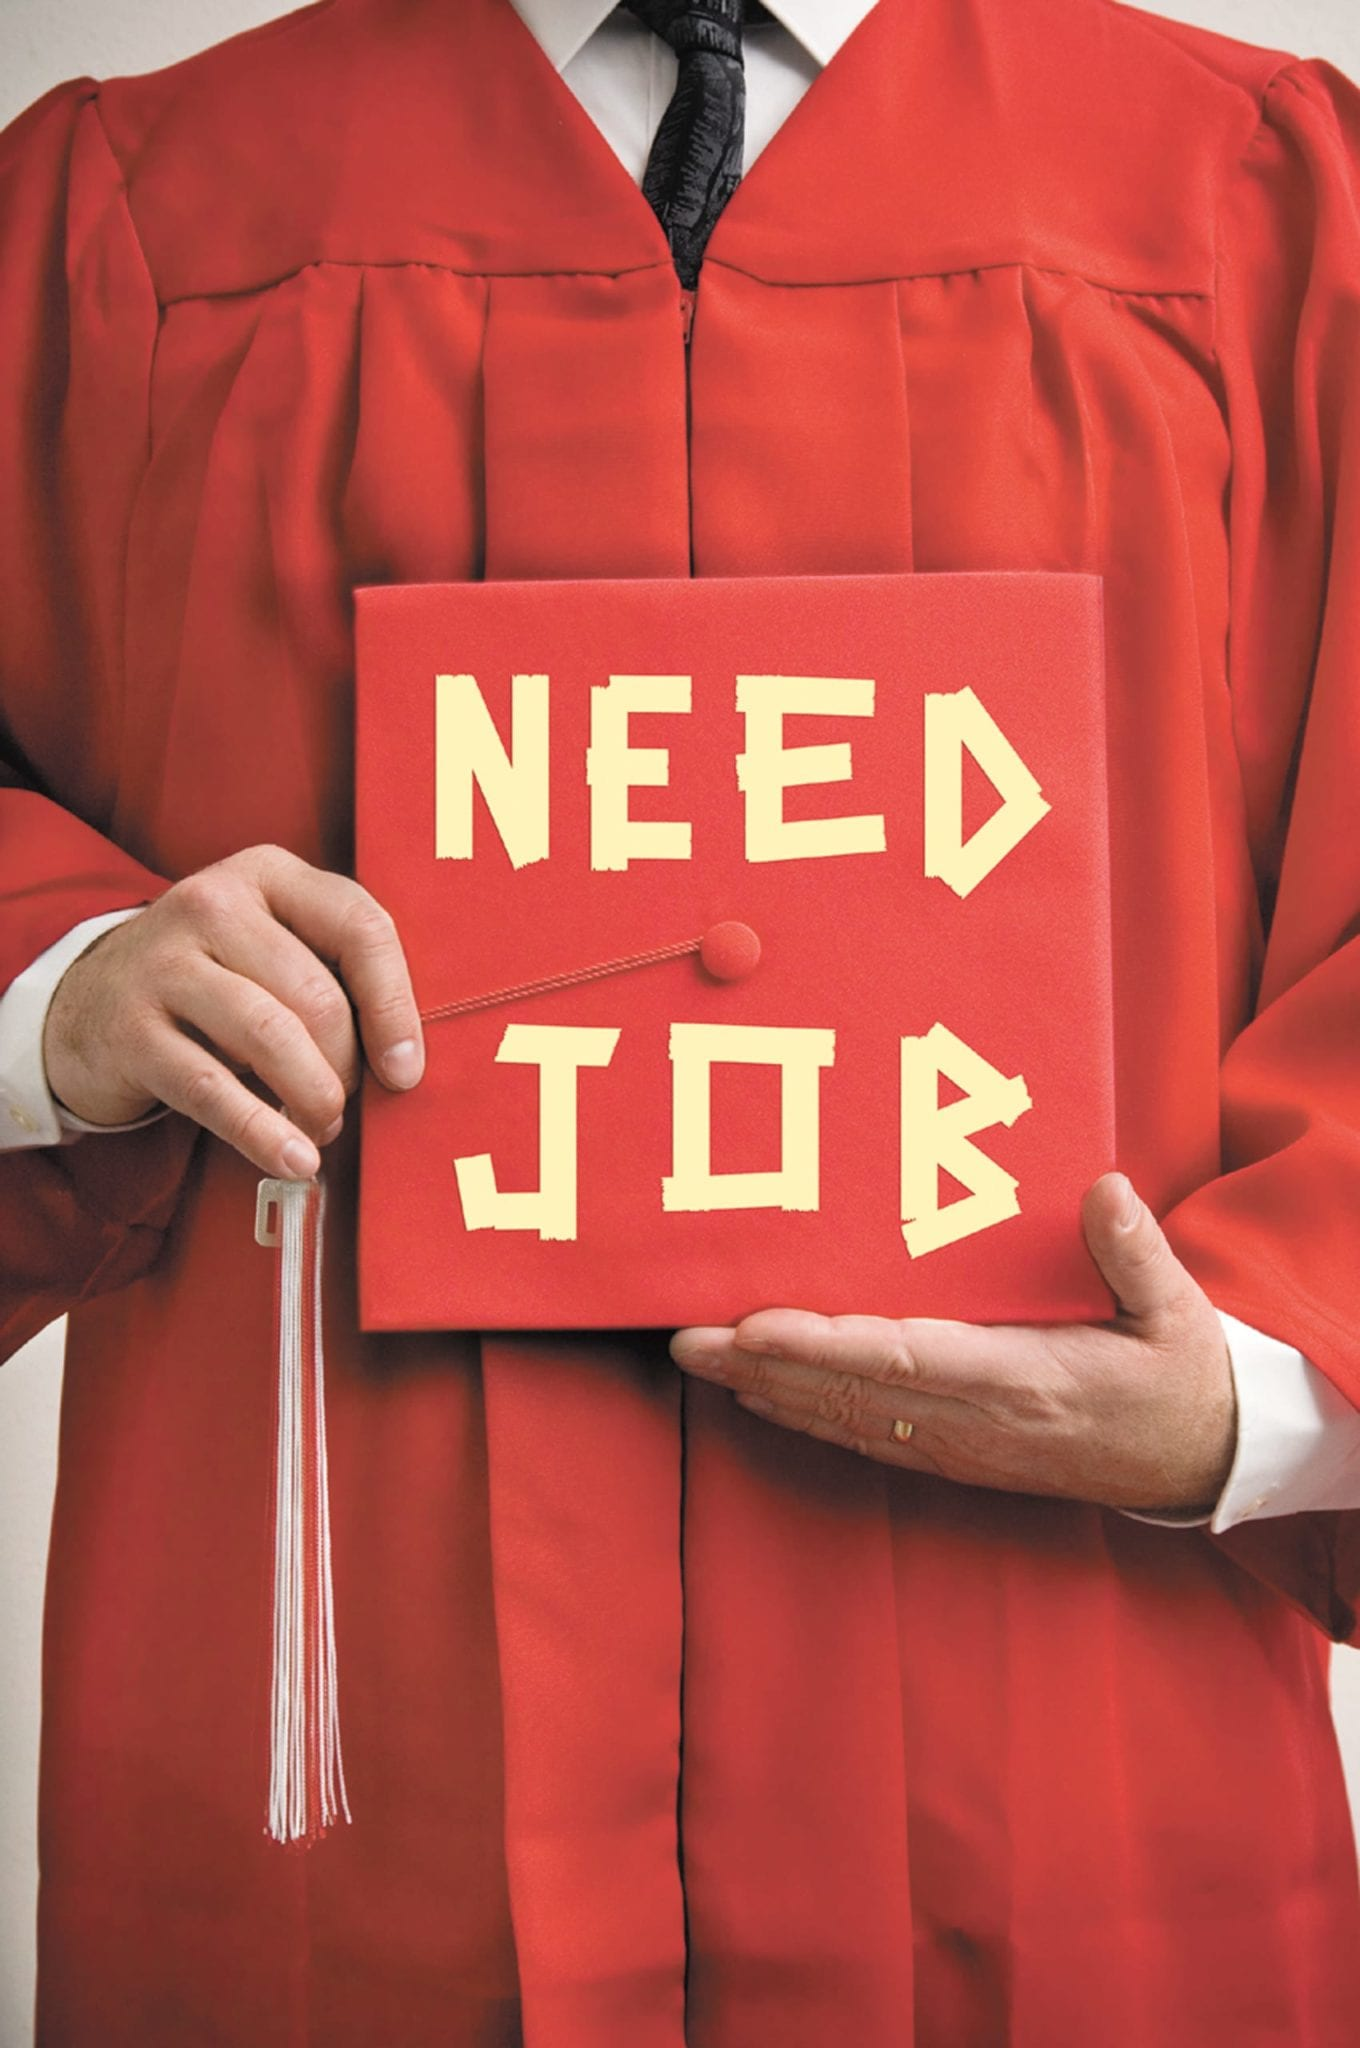 Choices now can determine career marketability later